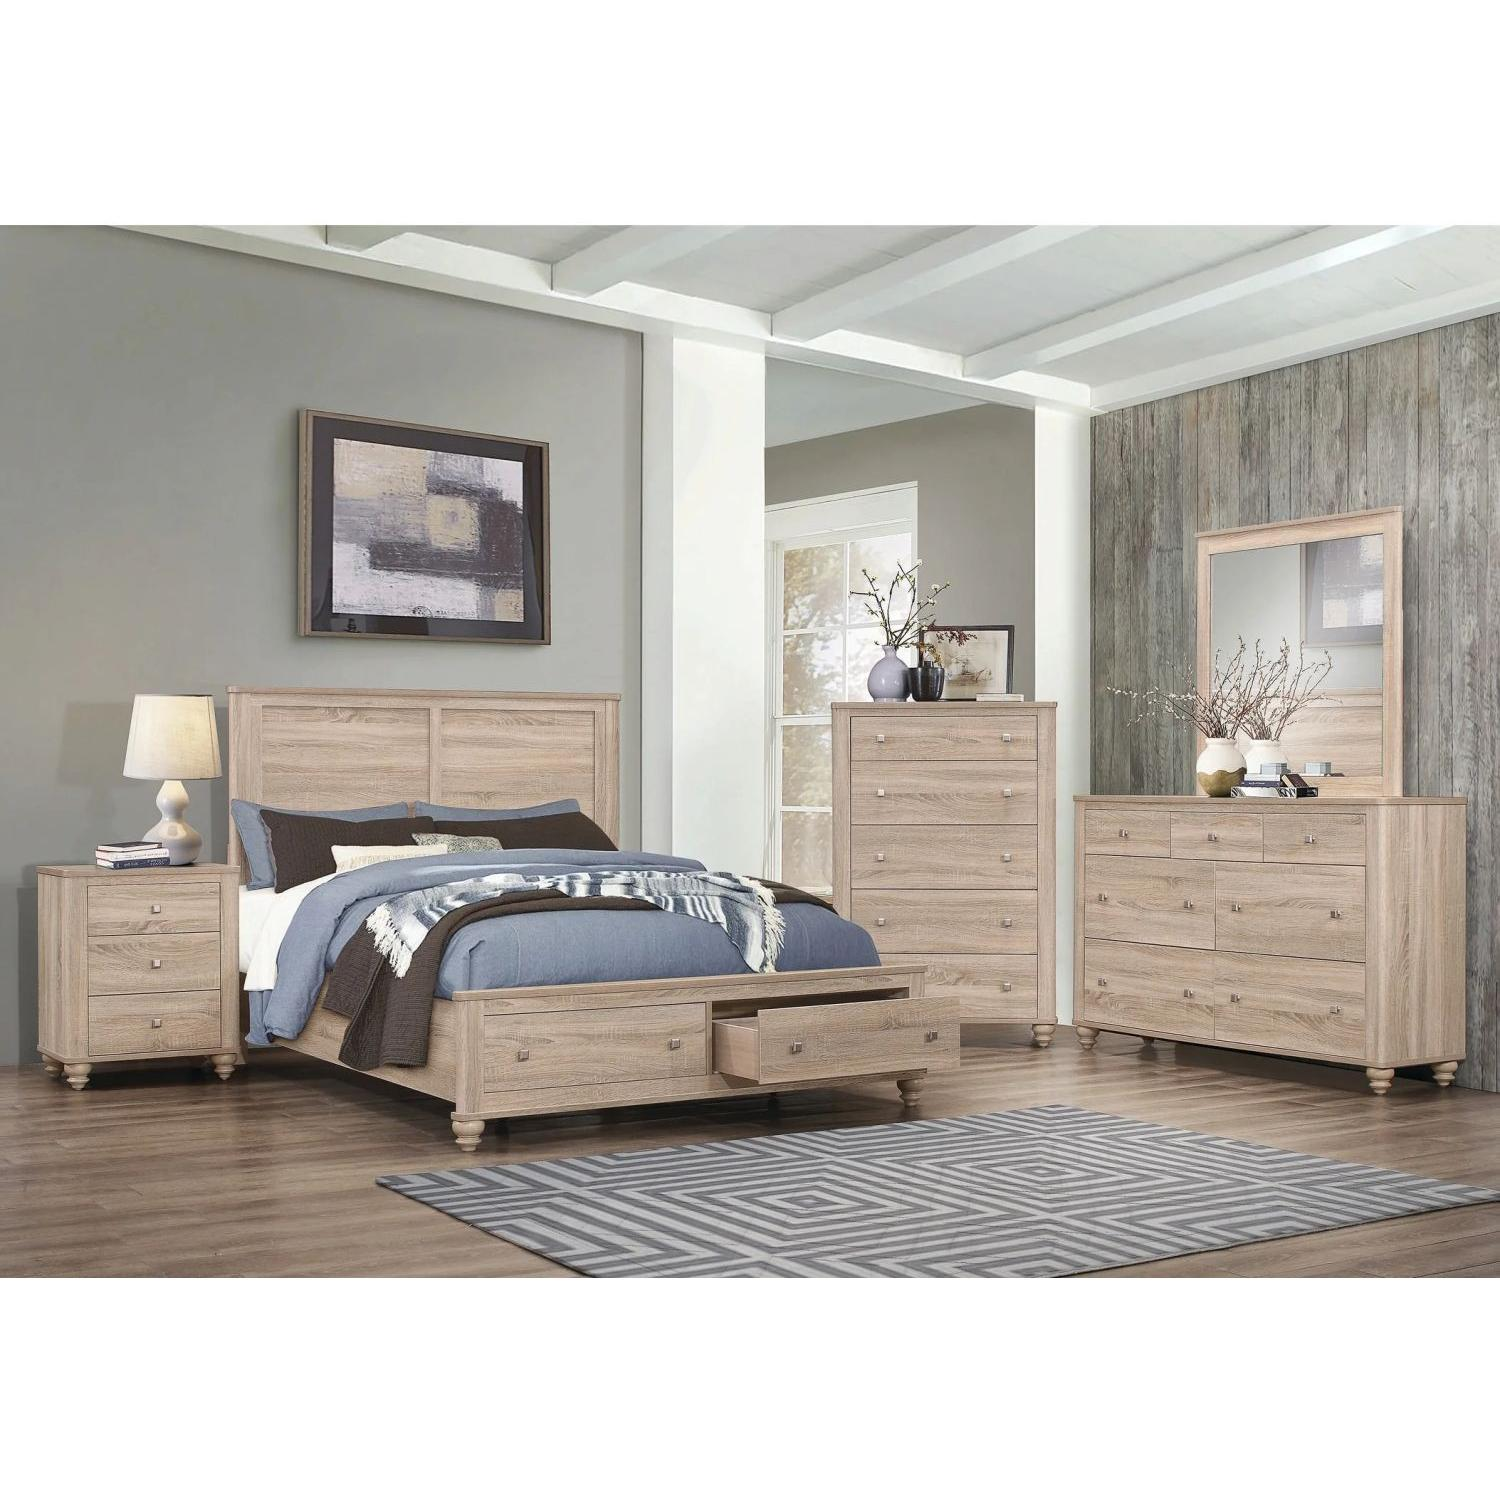 Nightstand in Natural Finish - image-2